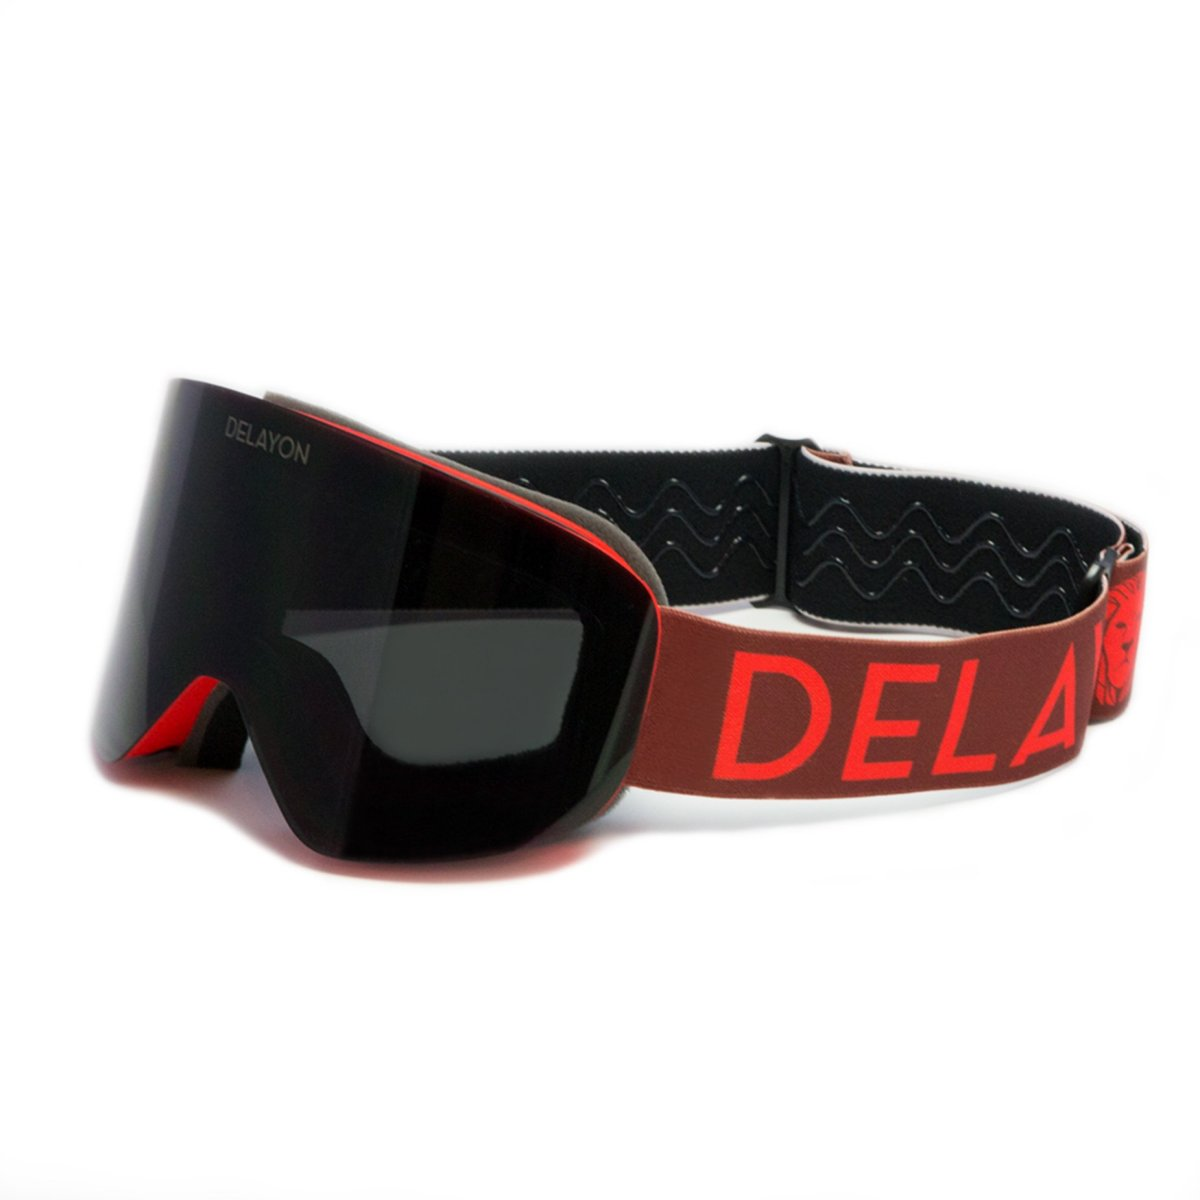 Delayon Eyewear Core 2in1 Goggle Bordeaux Red